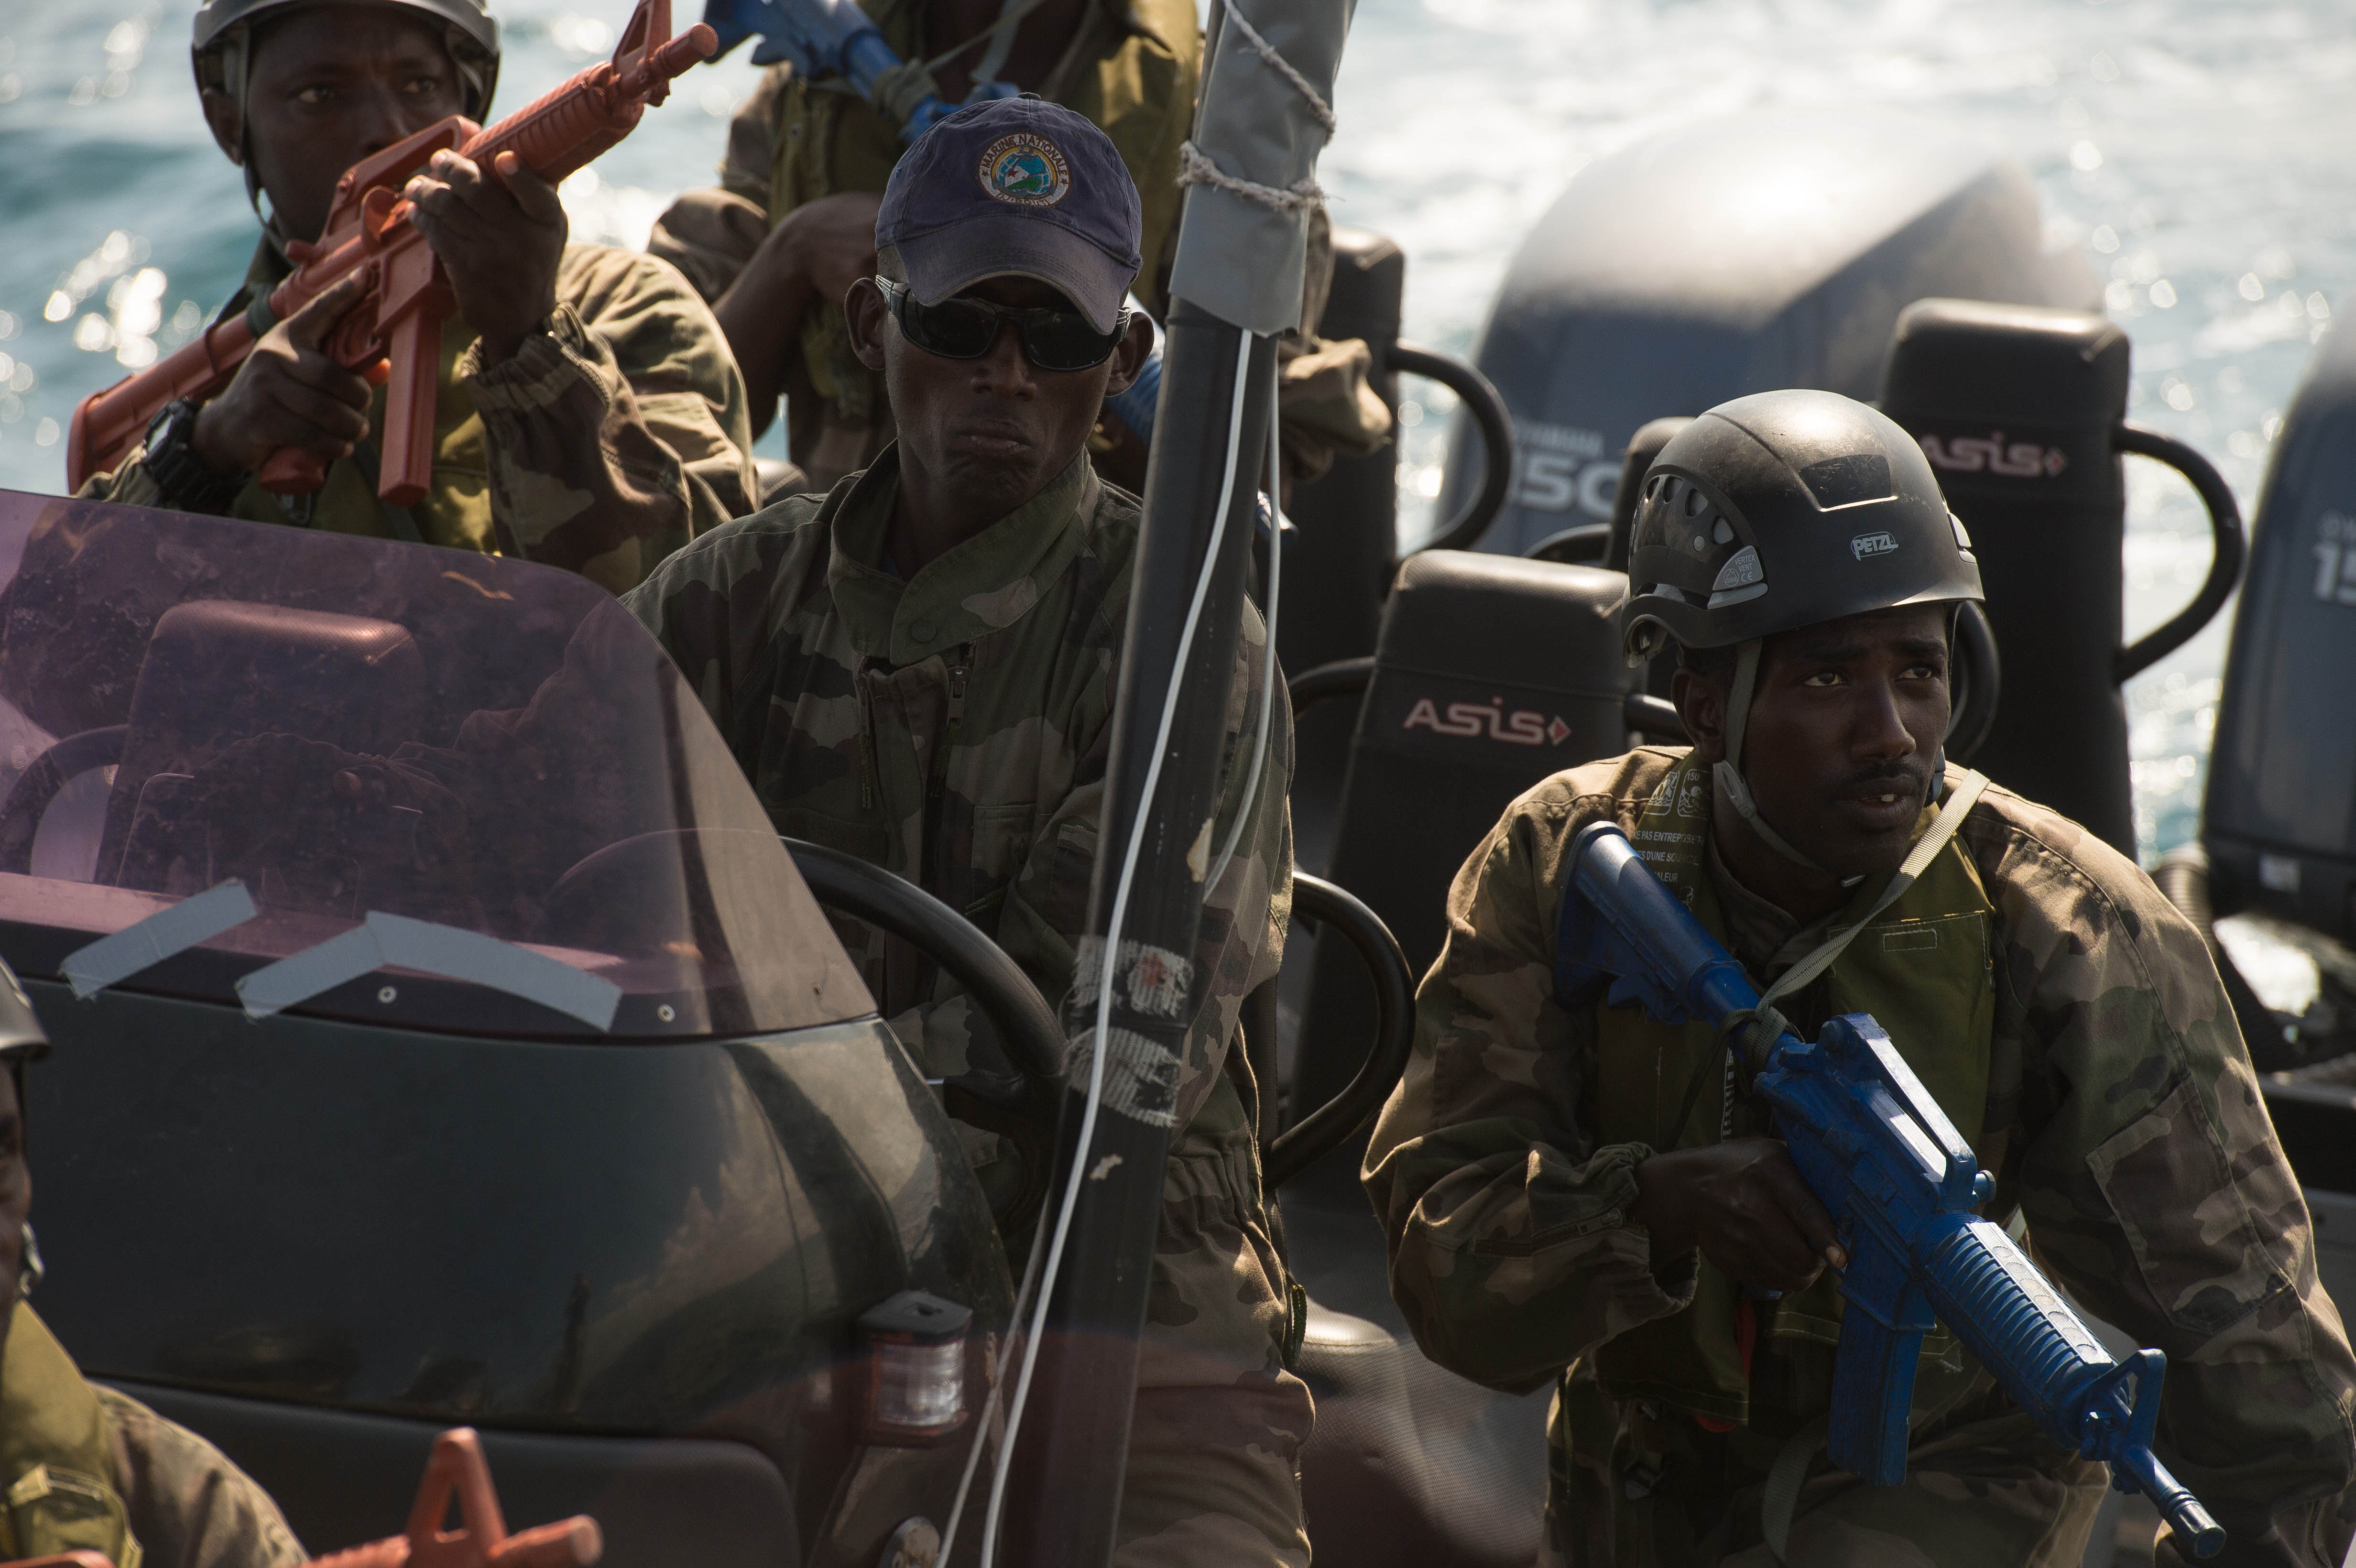 160204-F-IJ878-092 DJIBOUTI, Djibouti (Feb. 4, 2016) Maritime forces of Djibouti prepare to board a patrol boat during a training scenario as part of exercise Cutlass Express 2016. Cutlass Express is a U.S. Africa Command-sponsored multinational maritime exercise designed to increase maritime safety and security in the waters off East Africa, western Indian Ocean island nations, and in the Gulf of Aden. (U.S. Air Force photo by Tech. Sgt. Barry Loo/Released)